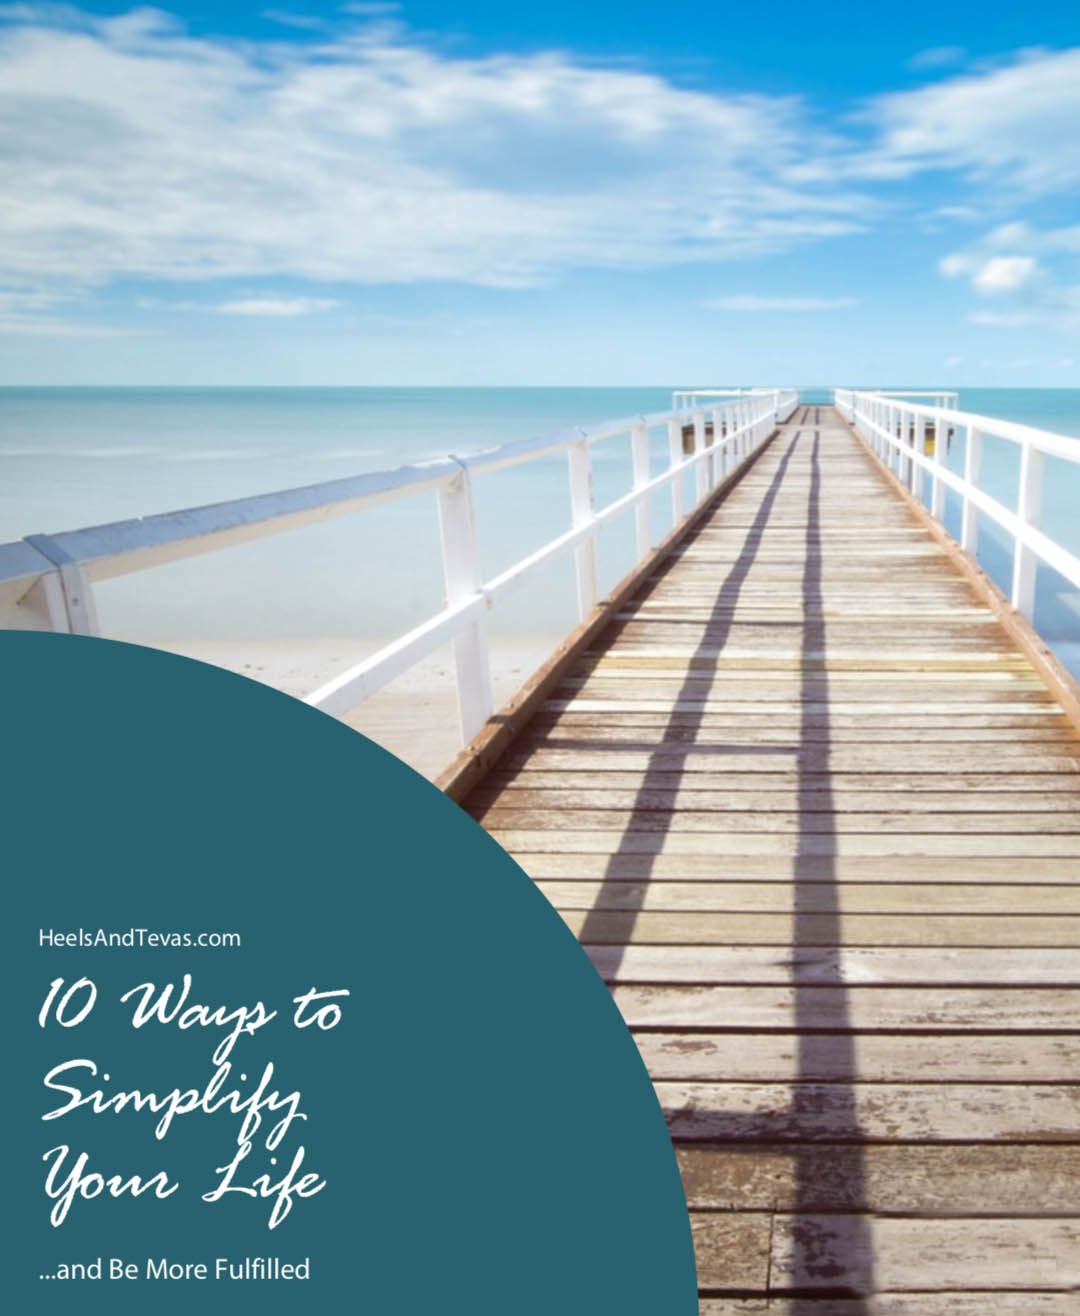 10 Ways to Simplify Life and Be More Fulfilled